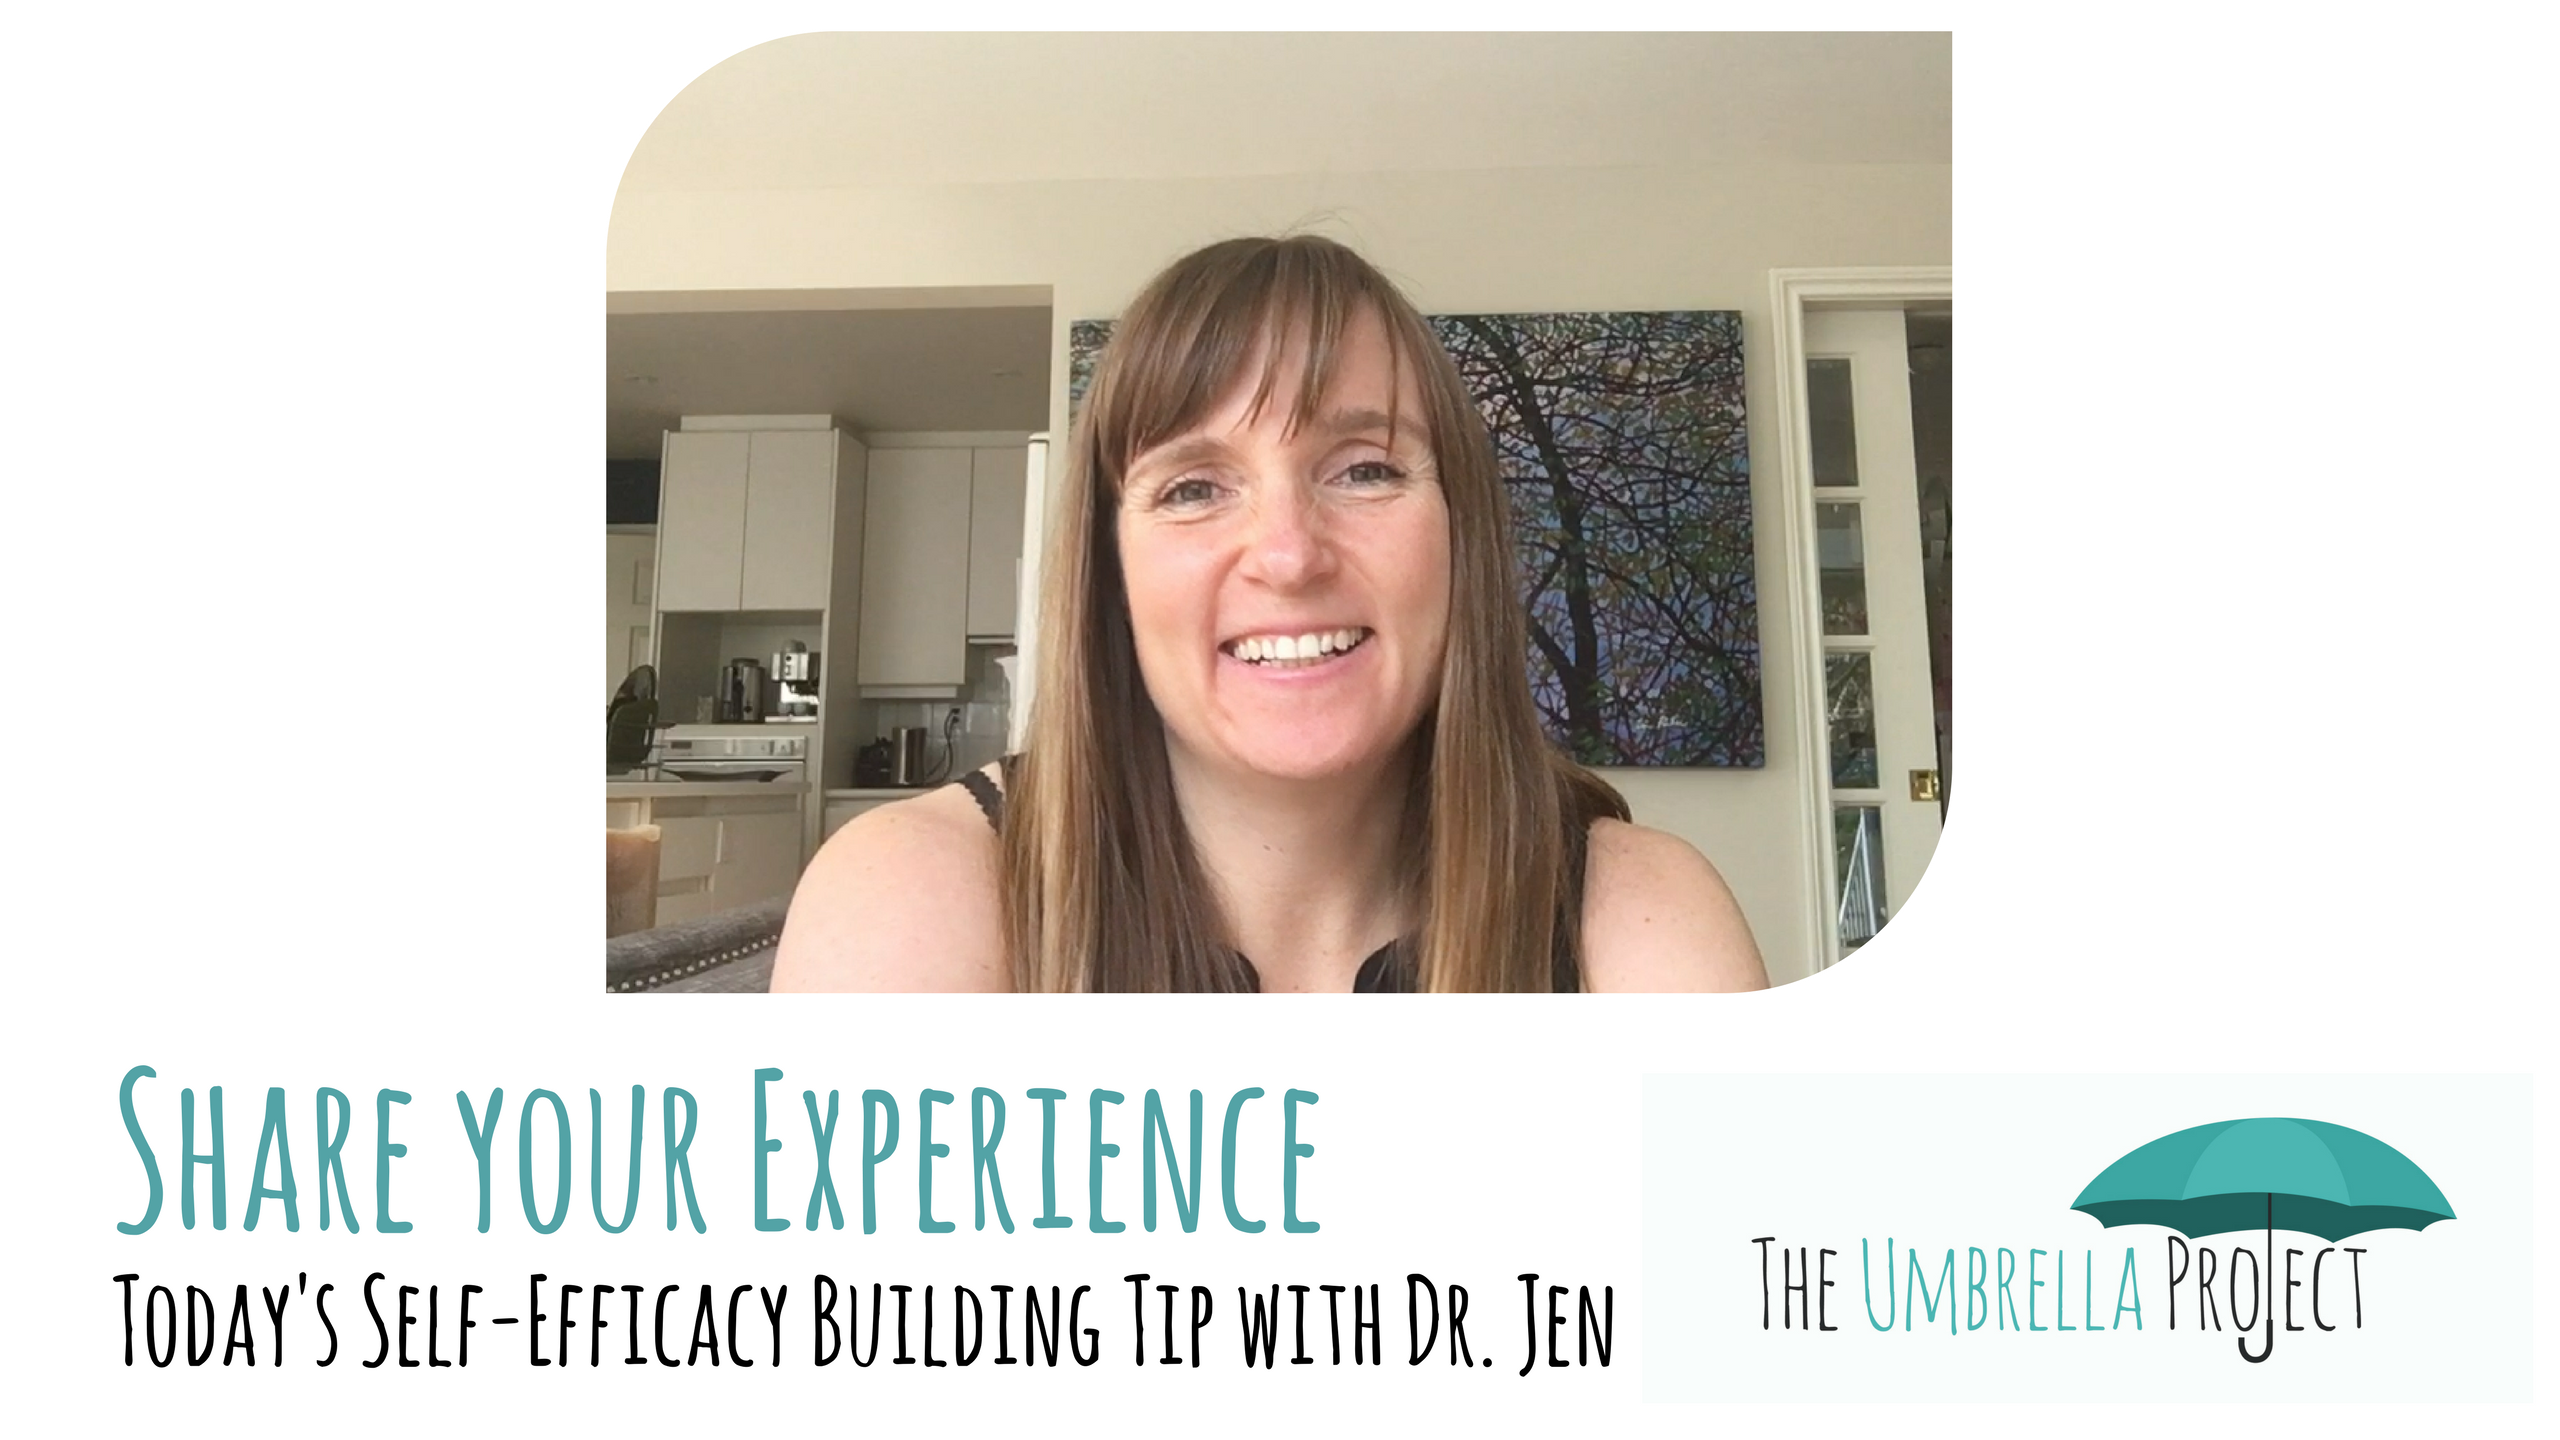 Share Your Experience: Today's Self-Efficacy Building Tip with Dr. Jen